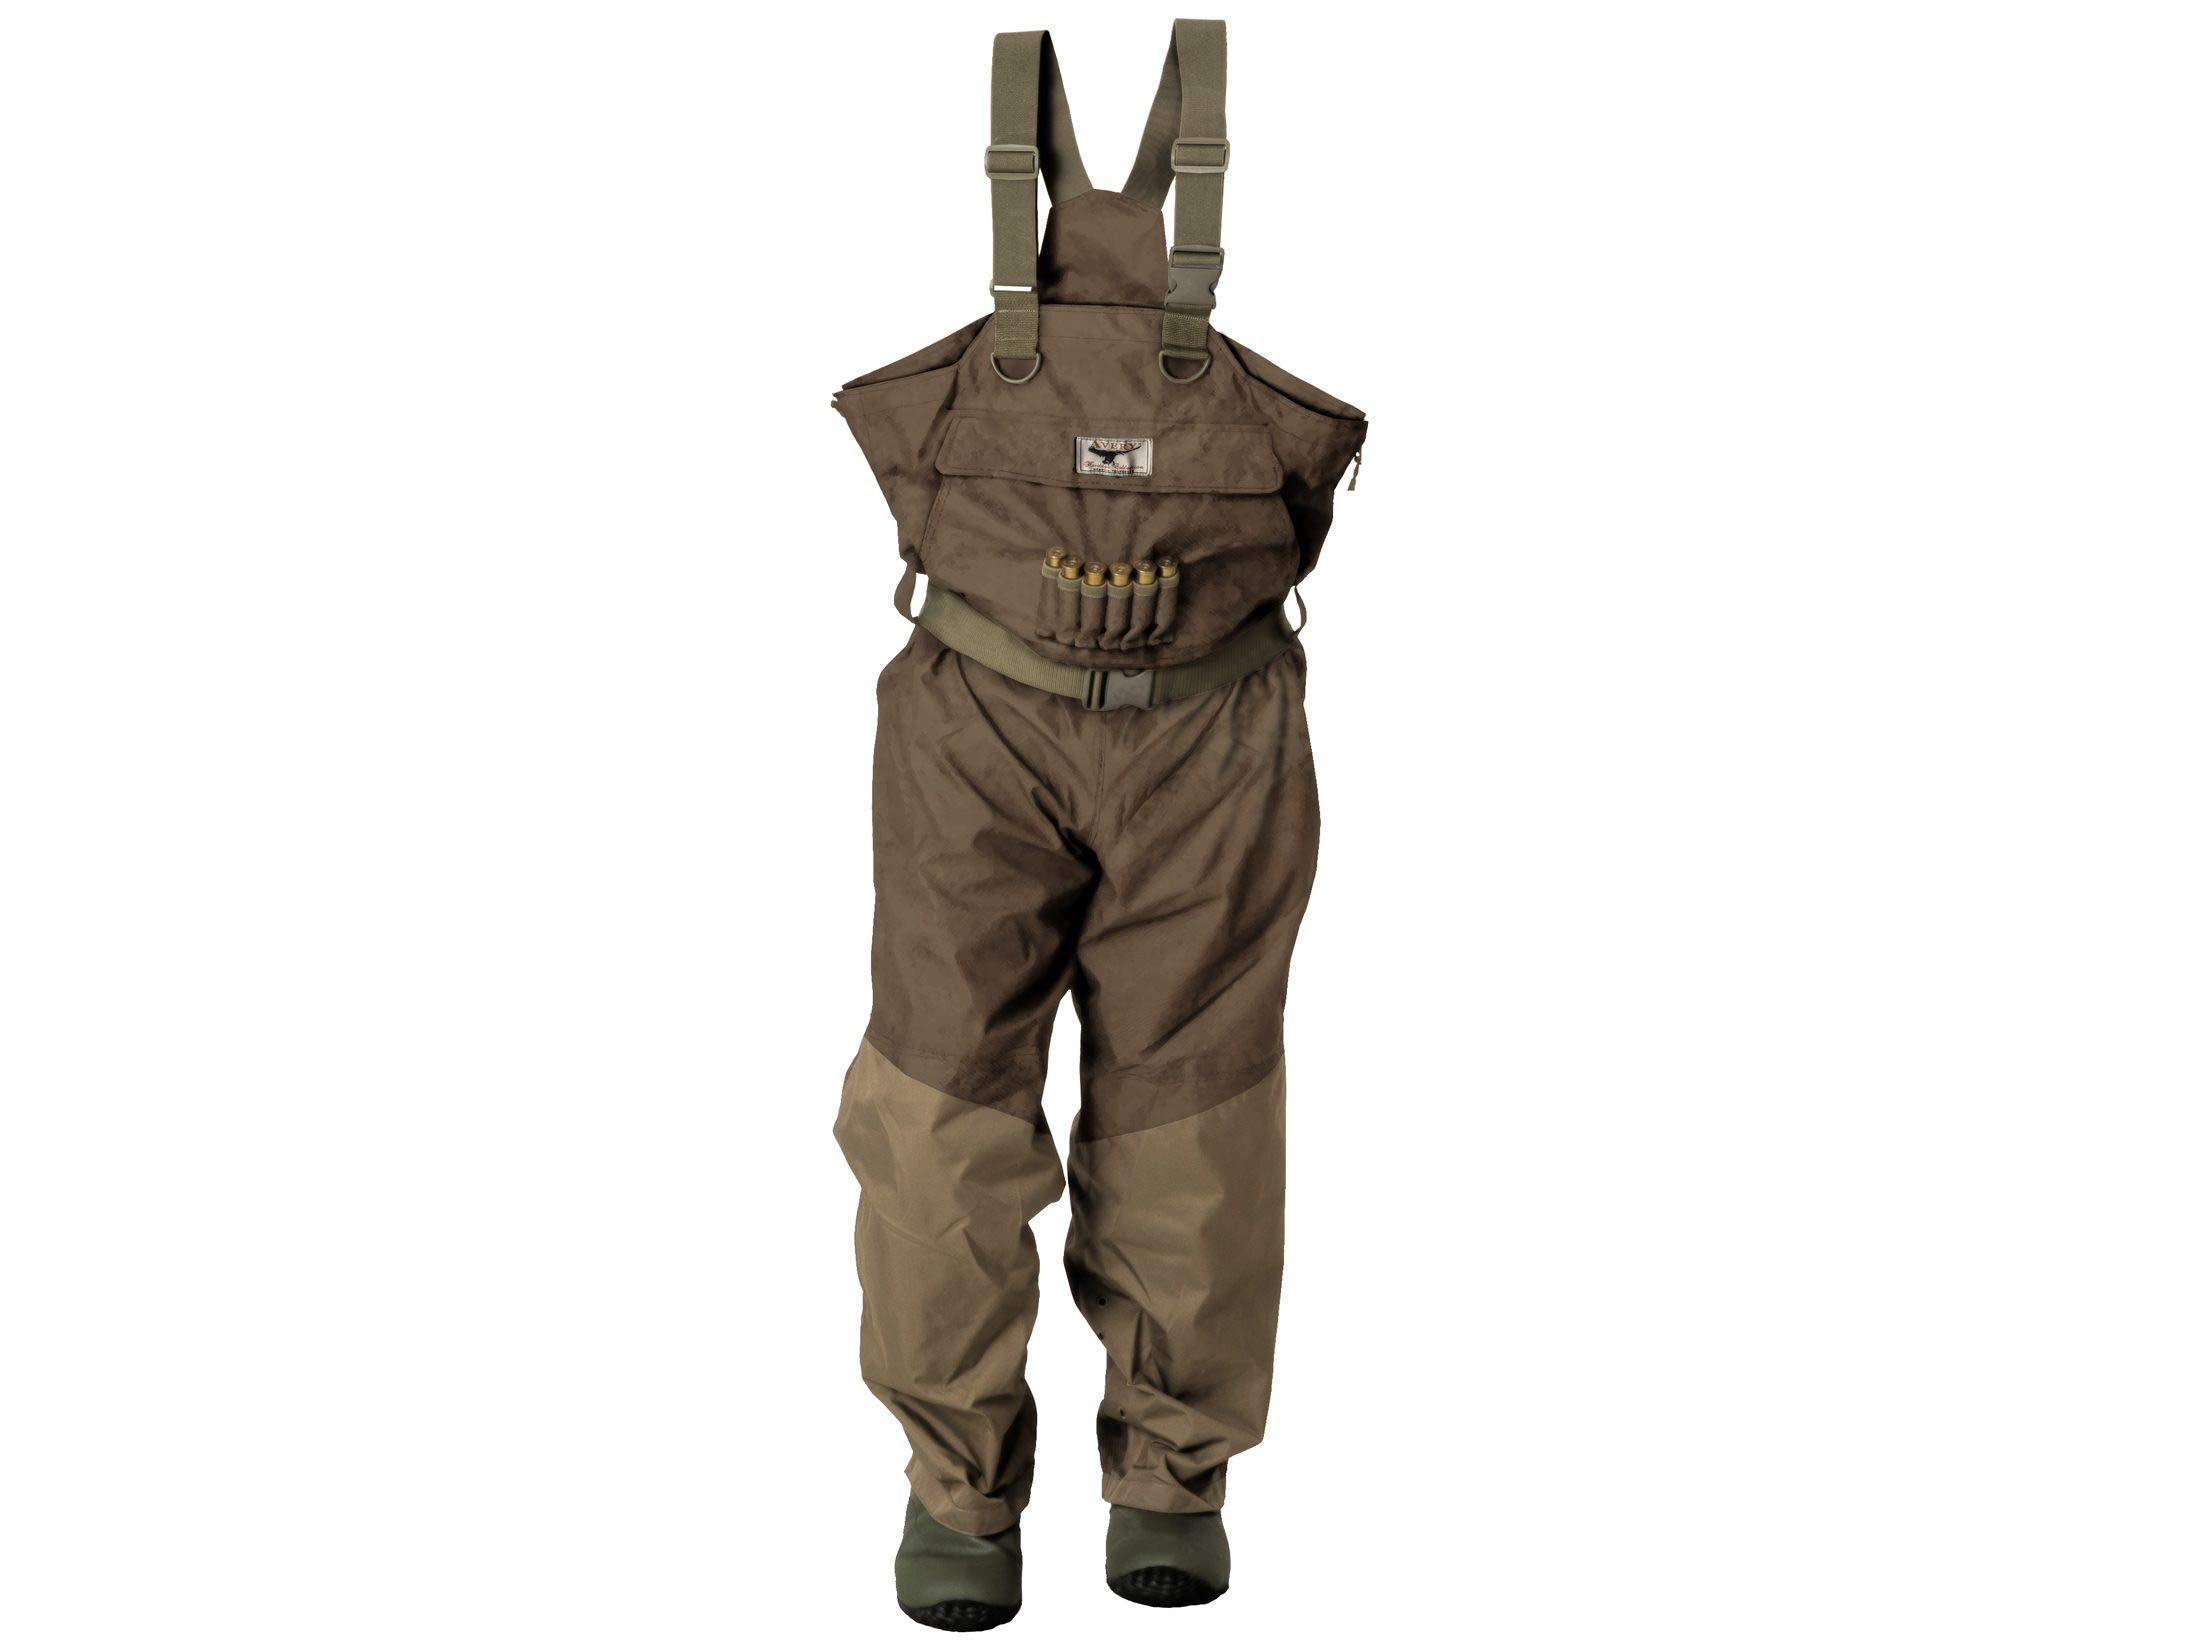 Avery Hunting Gear Heritage Breathable Insulated Wader - MB - Size 14 by Avery (Image #1)